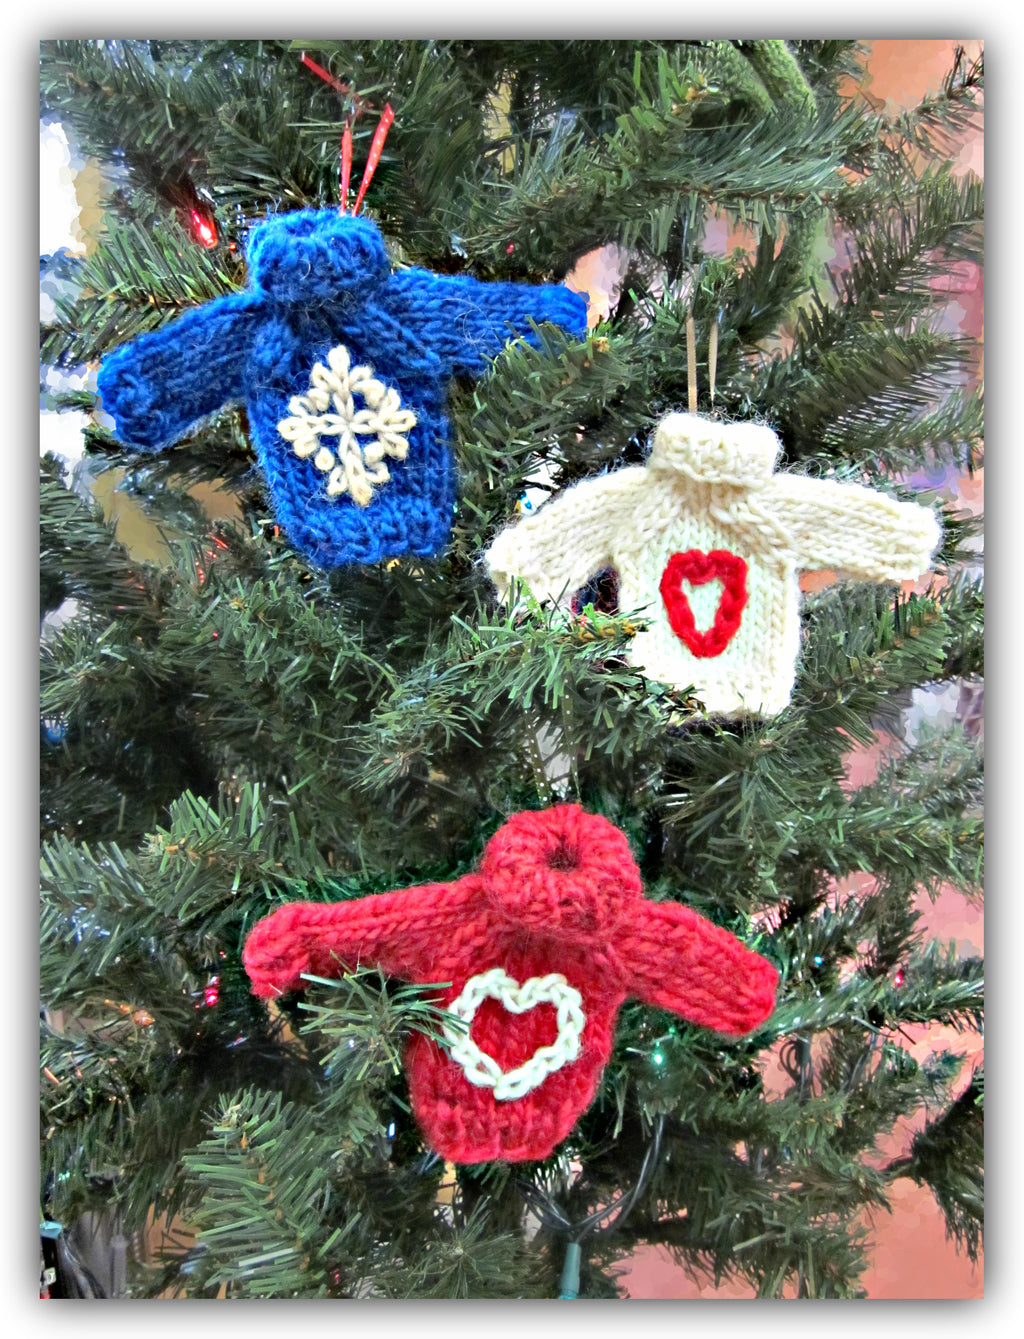 Christmas Sweater Ornaments Kit - Designed by Stephanie Boozer